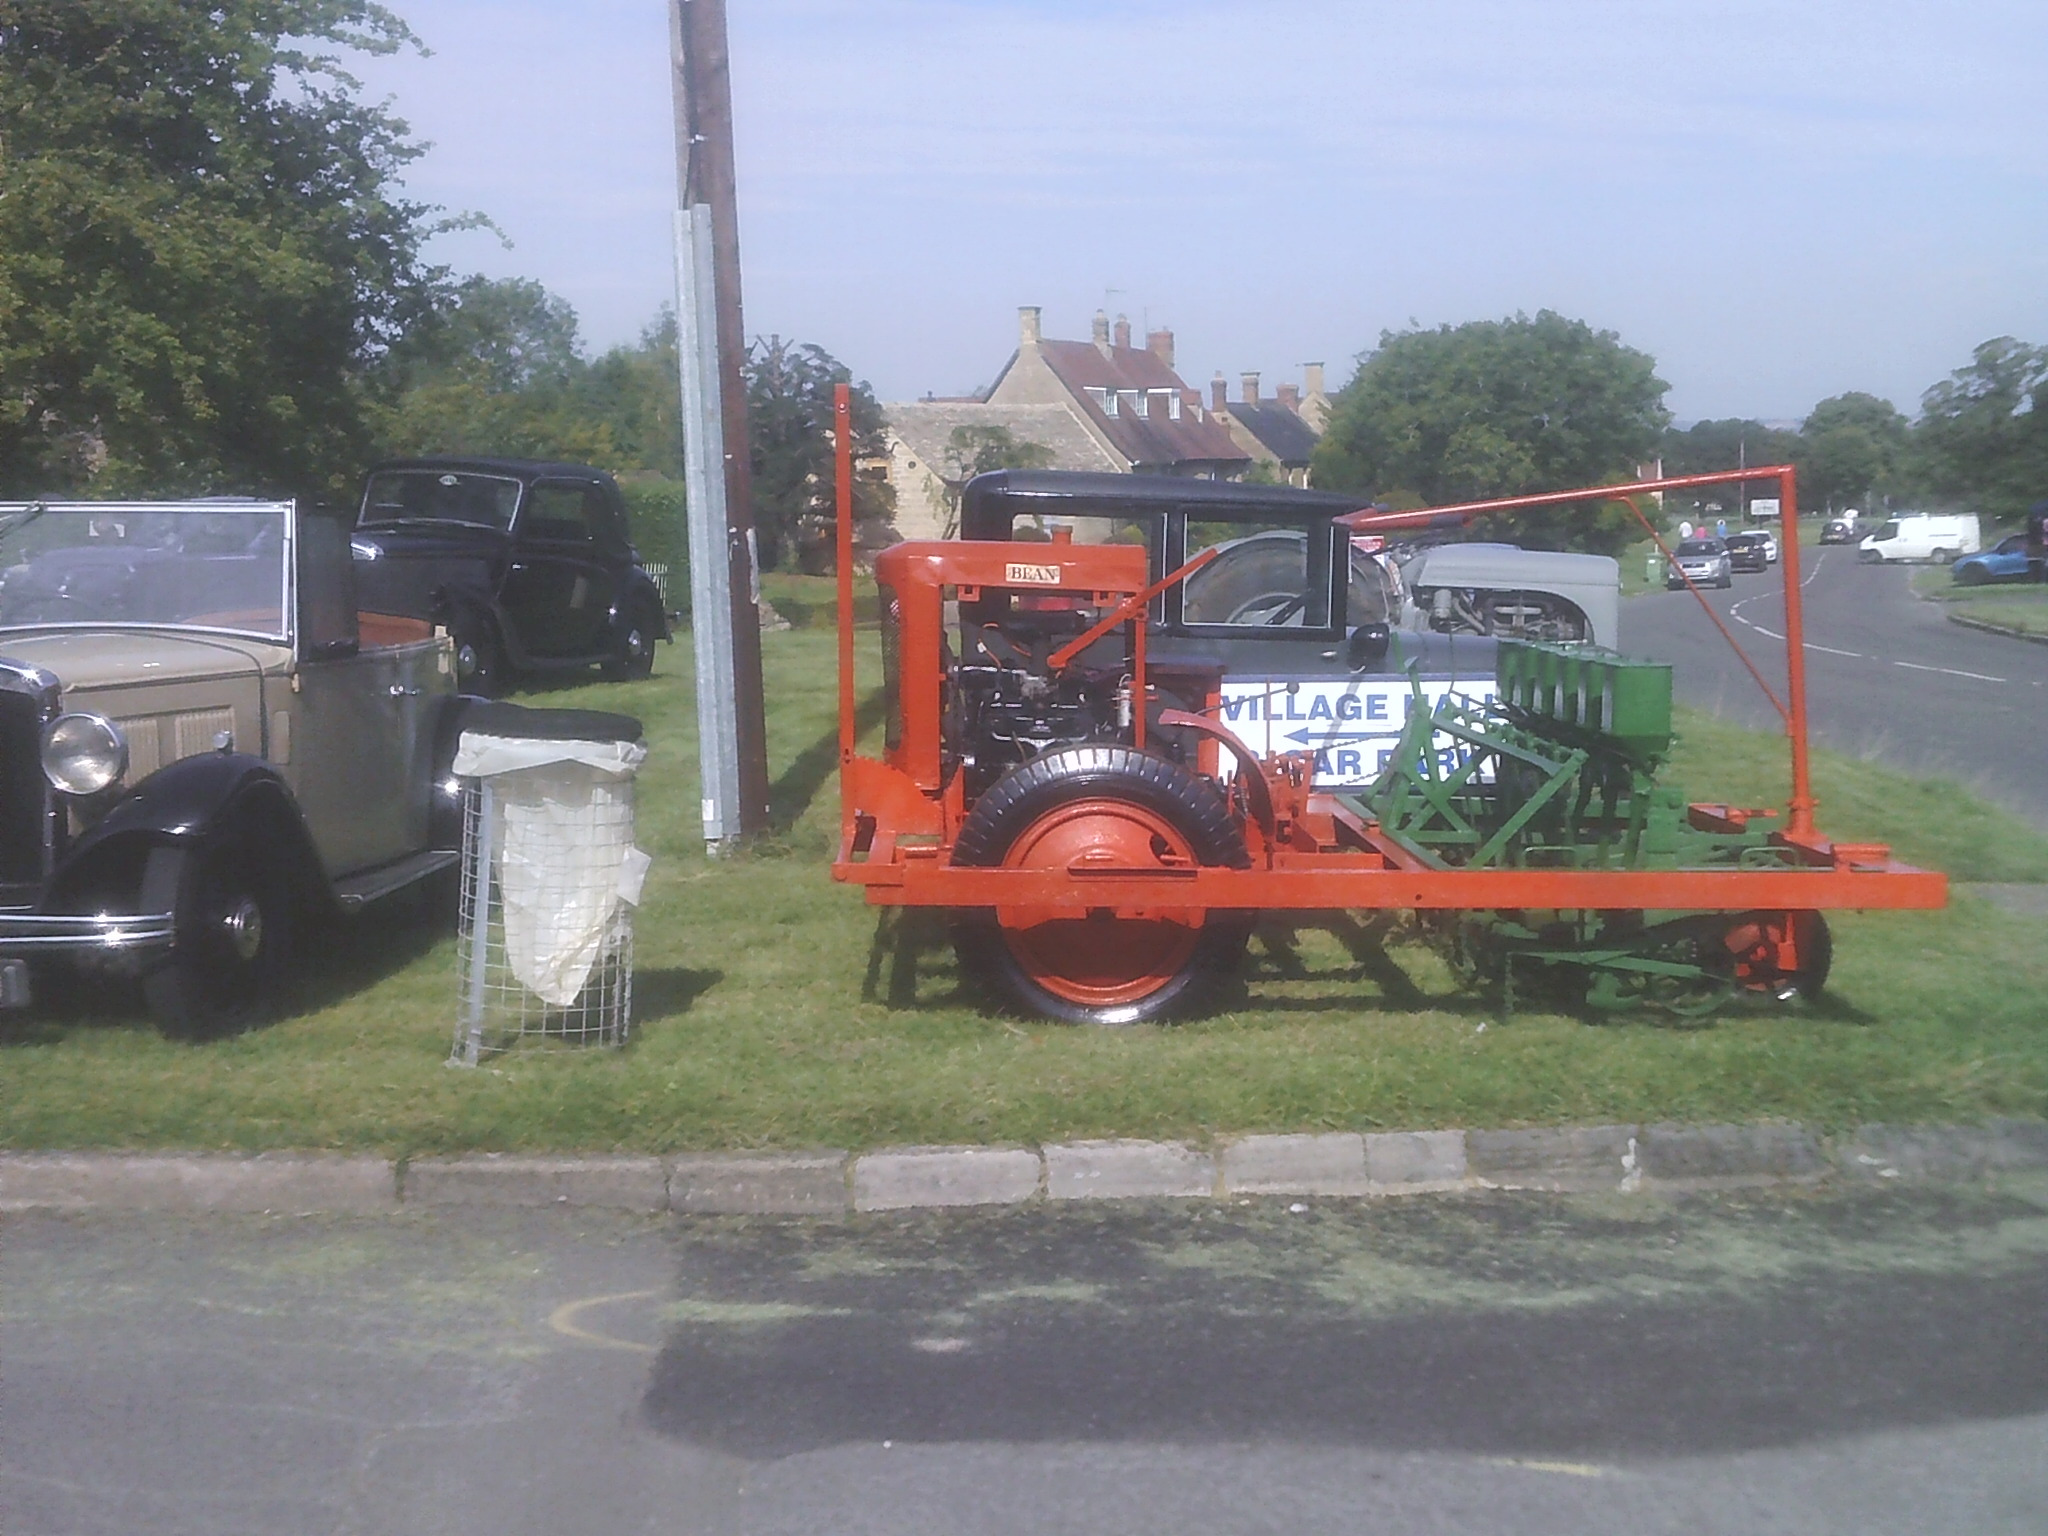 Vintage seed drill at the Willersey Show